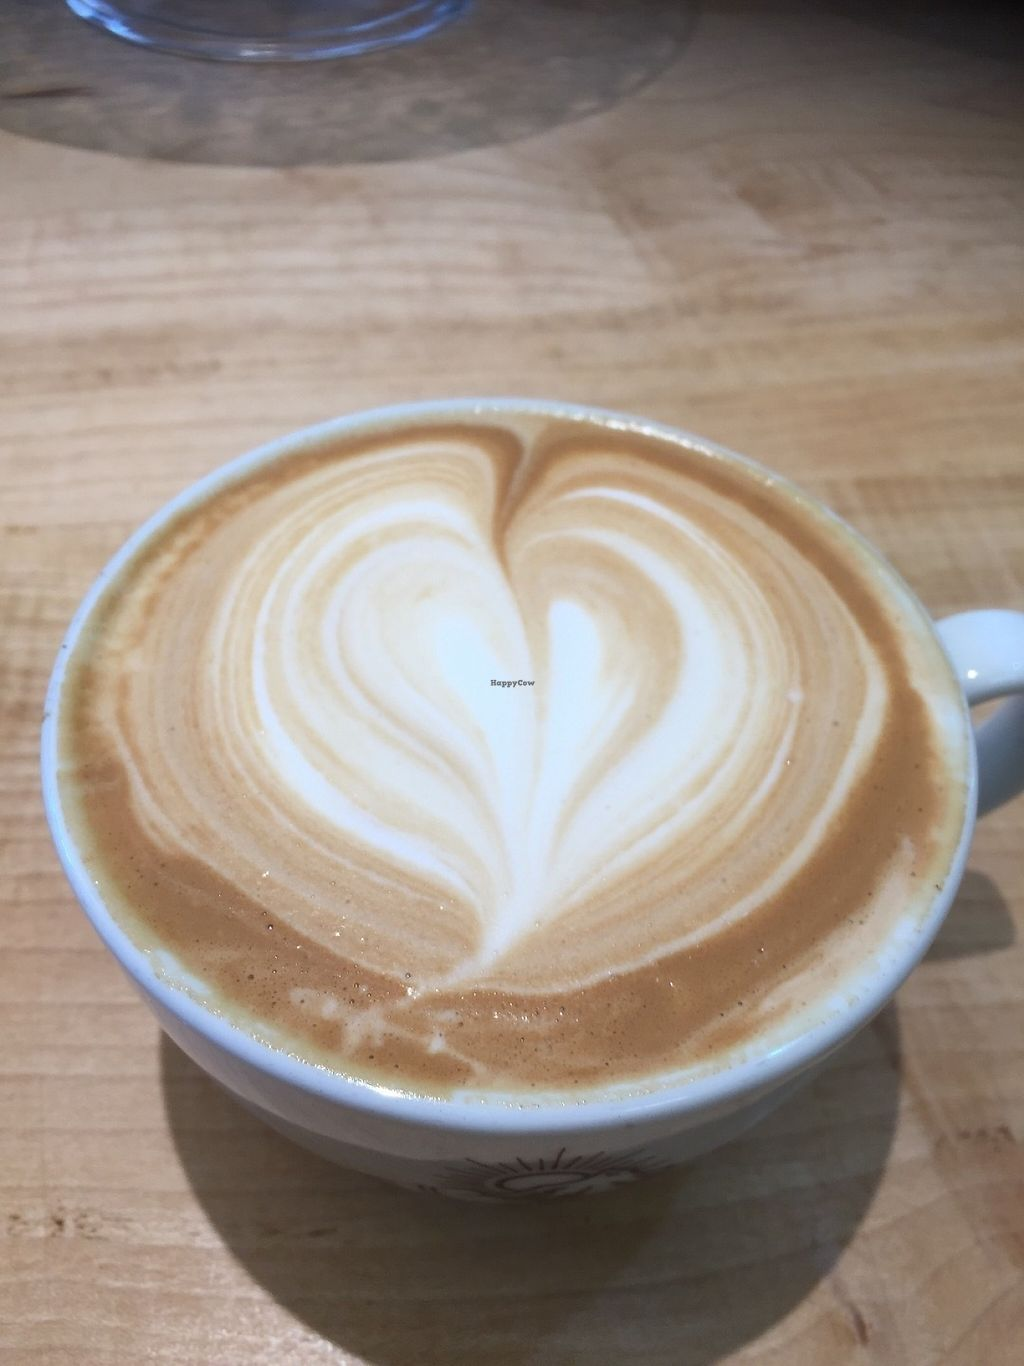 "Photo of World Peace Cafe  by <a href=""/members/profile/worldpeace"">worldpeace</a> <br/>A cup of love from the world peace cafe.  <br/> May 11, 2017  - <a href='/contact/abuse/image/34984/257852'>Report</a>"